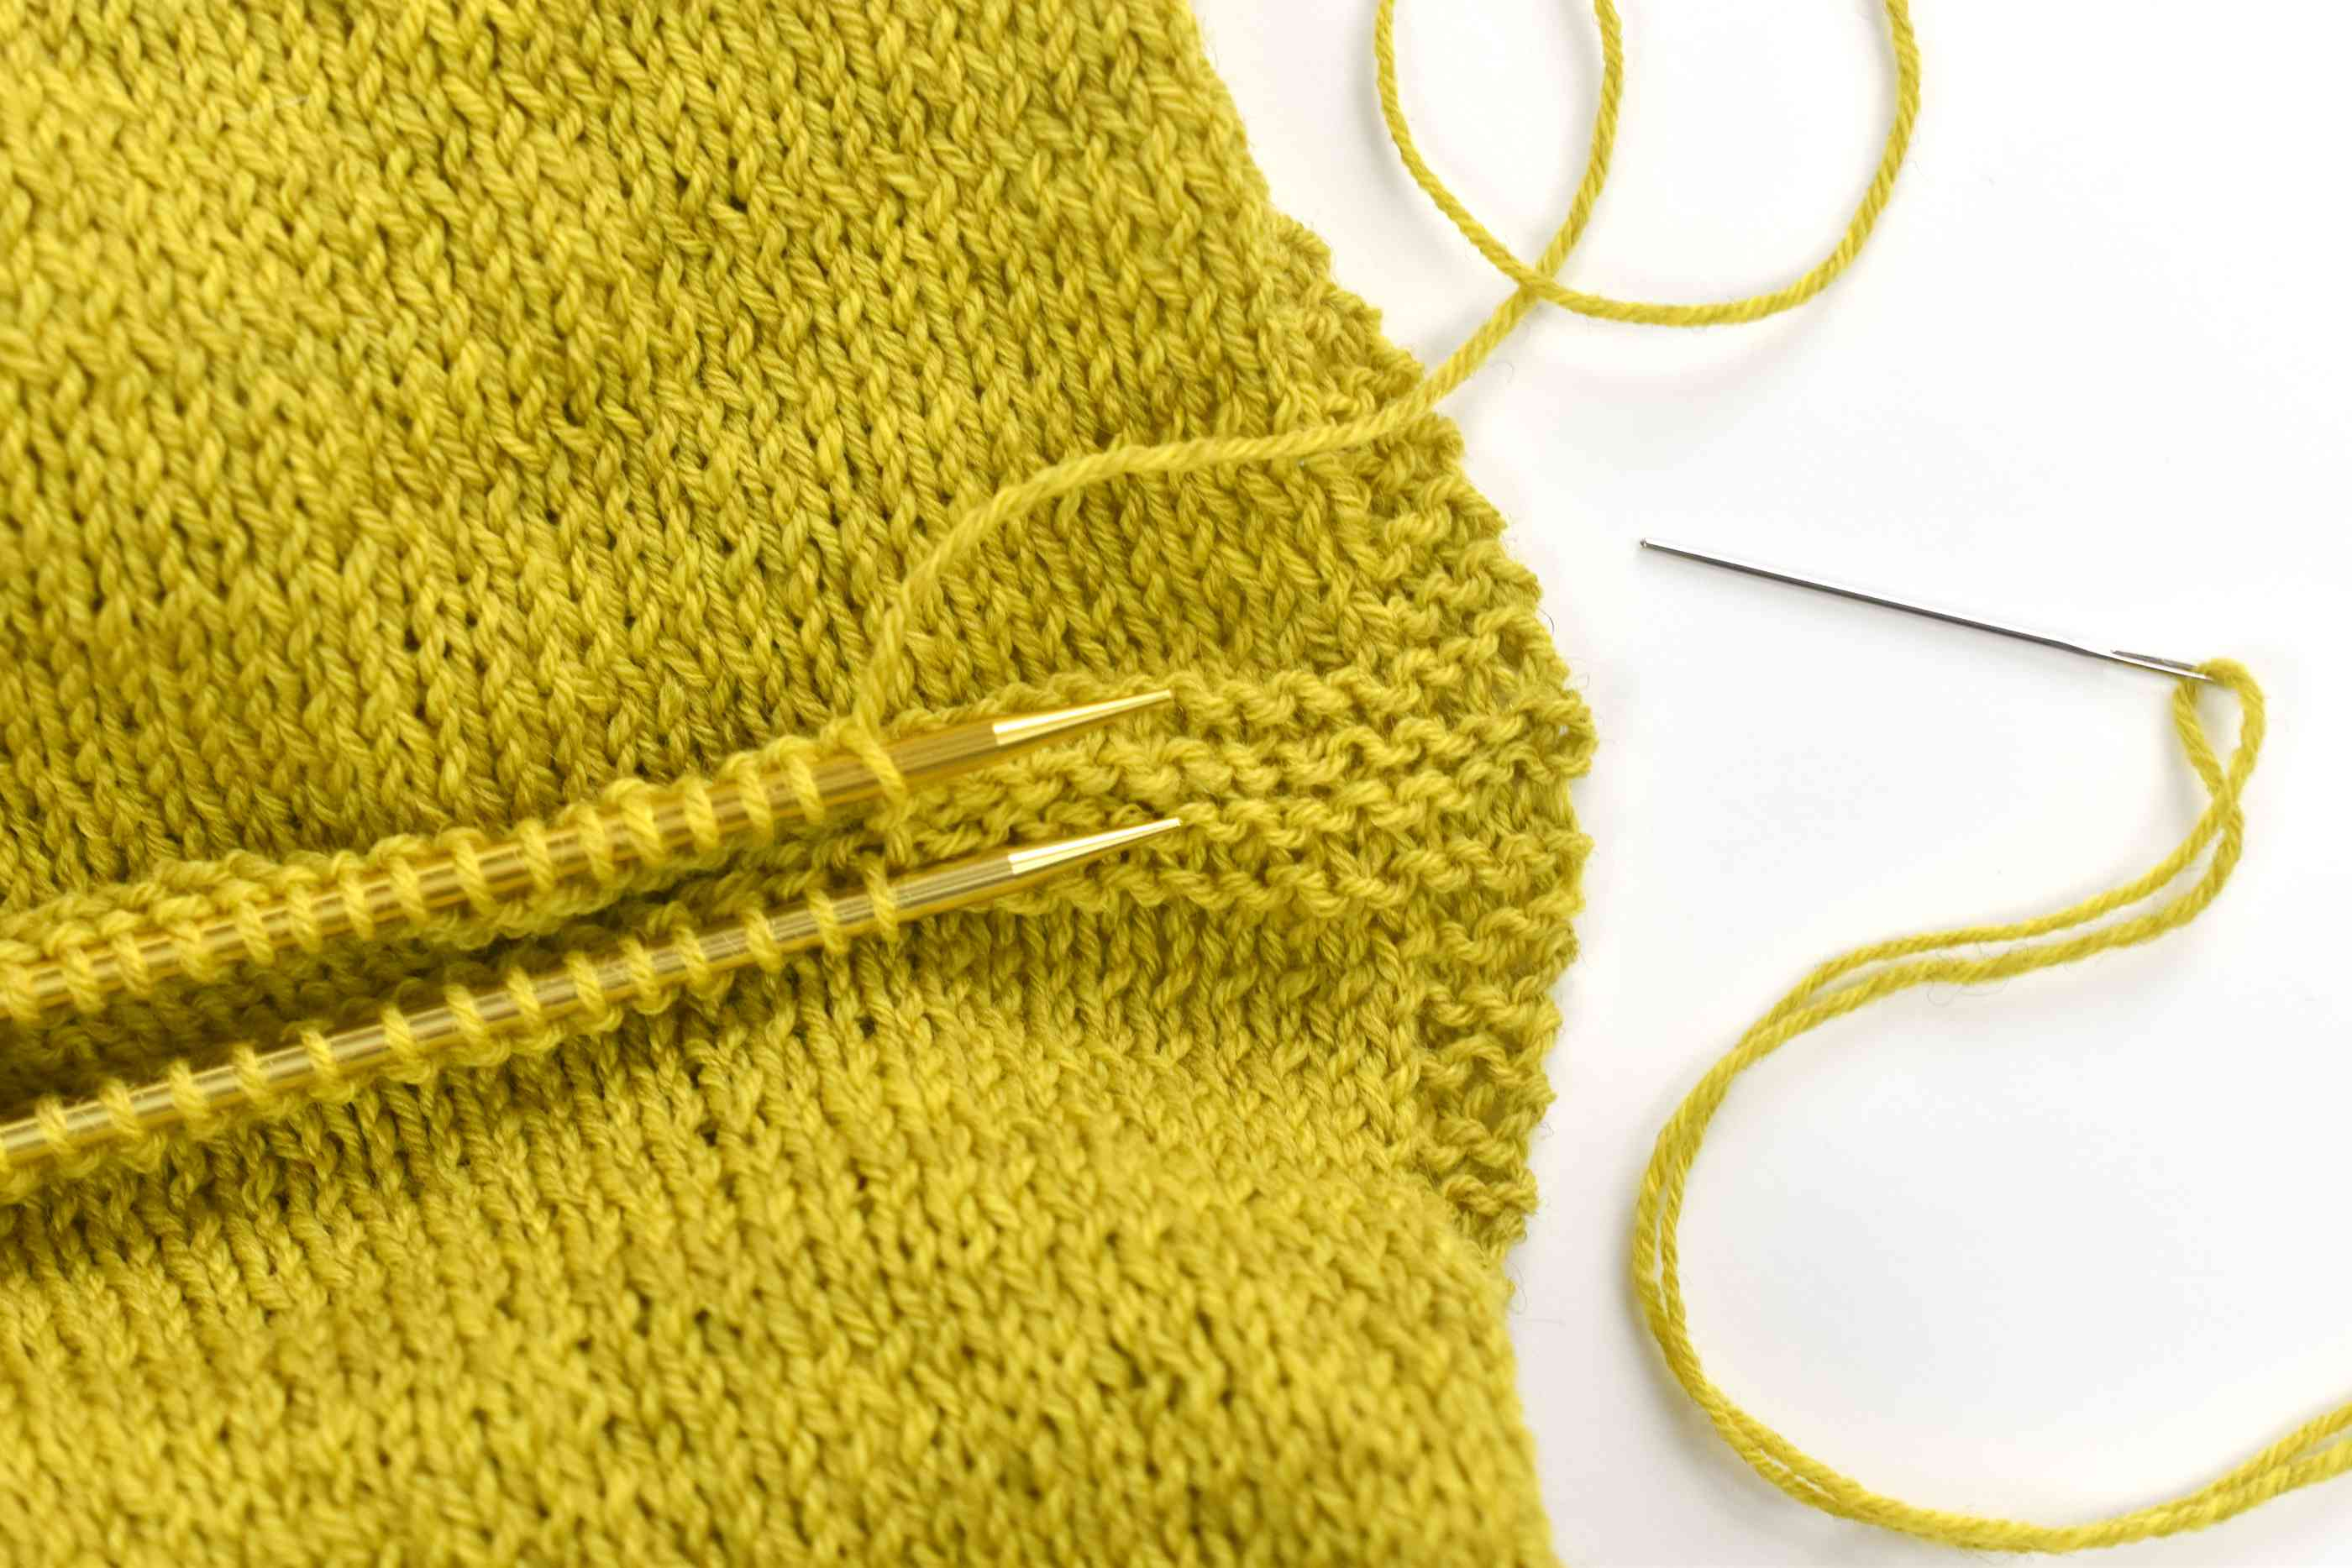 Grafting the shoulders of a tunic together with three needles